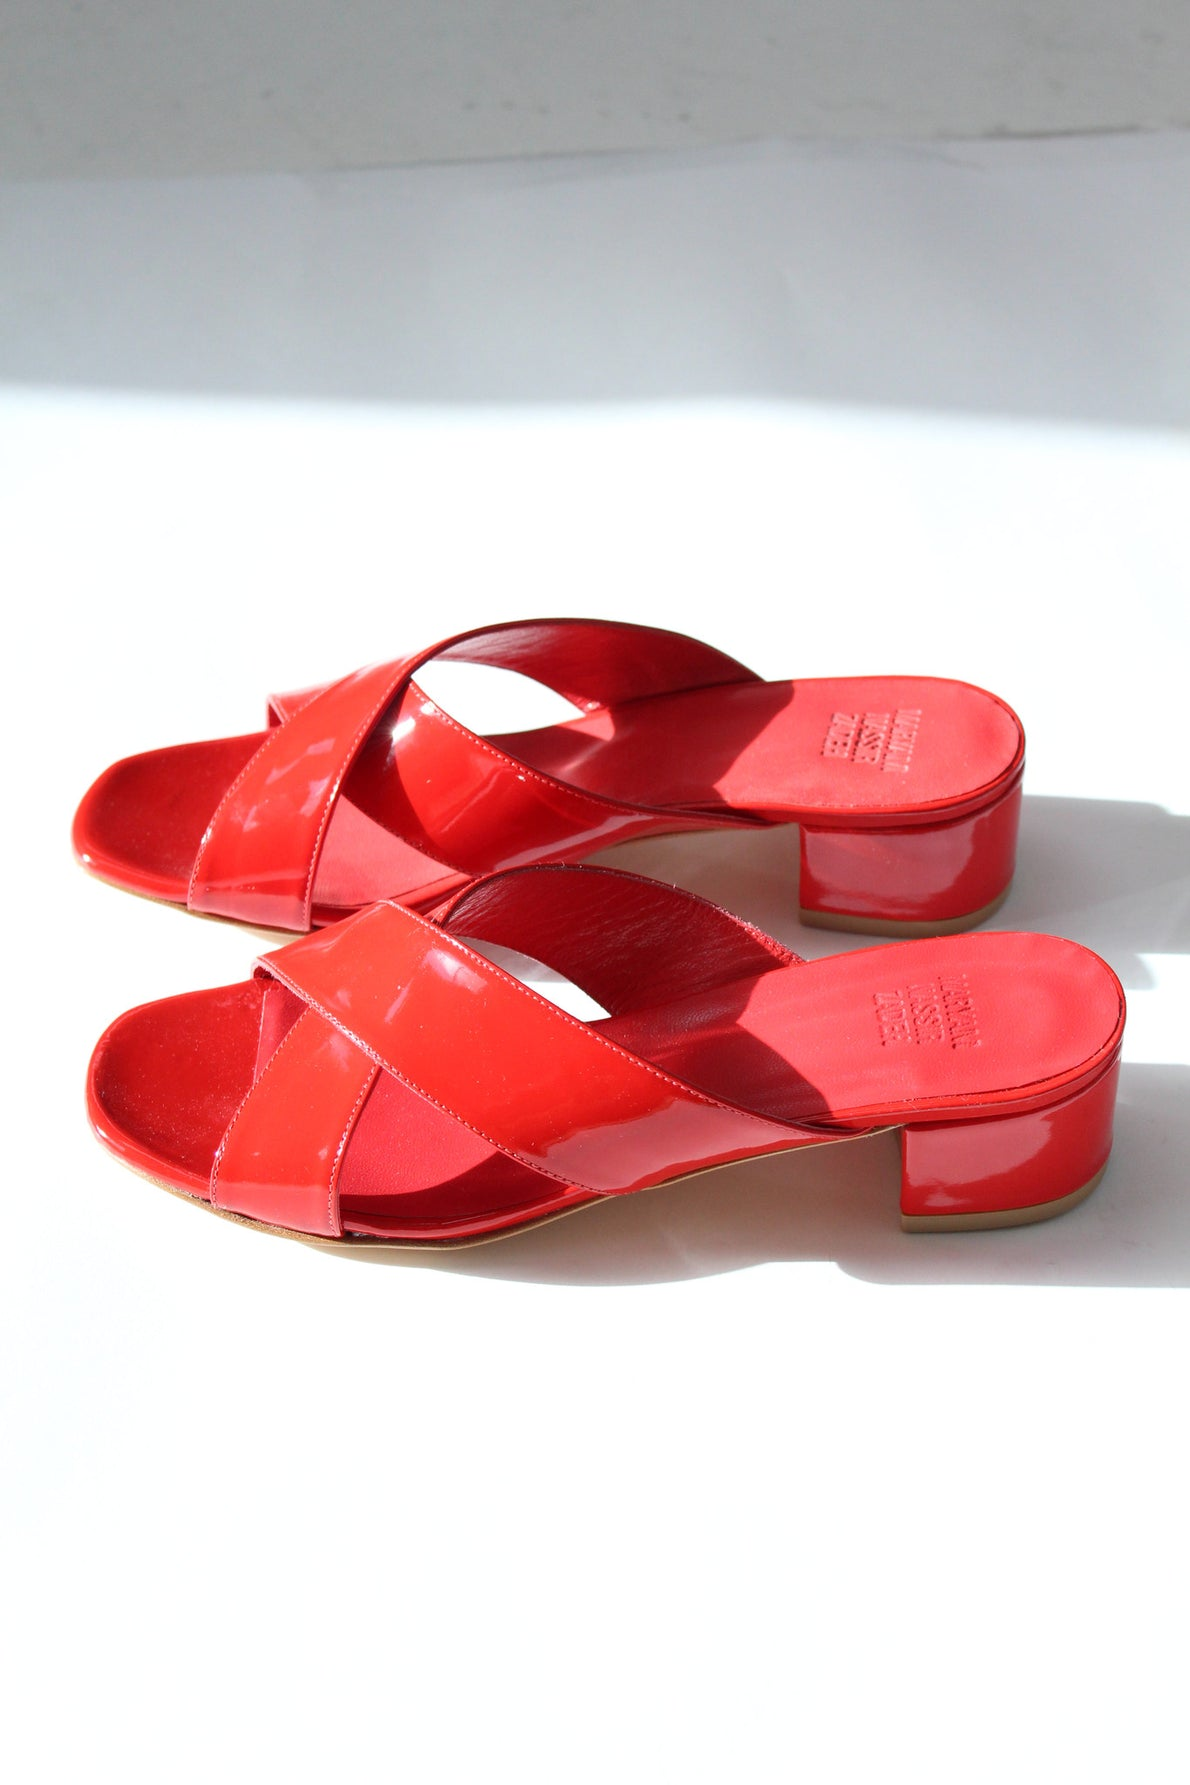 MNZ Lauren Slide Red Patent Leather At Beklina